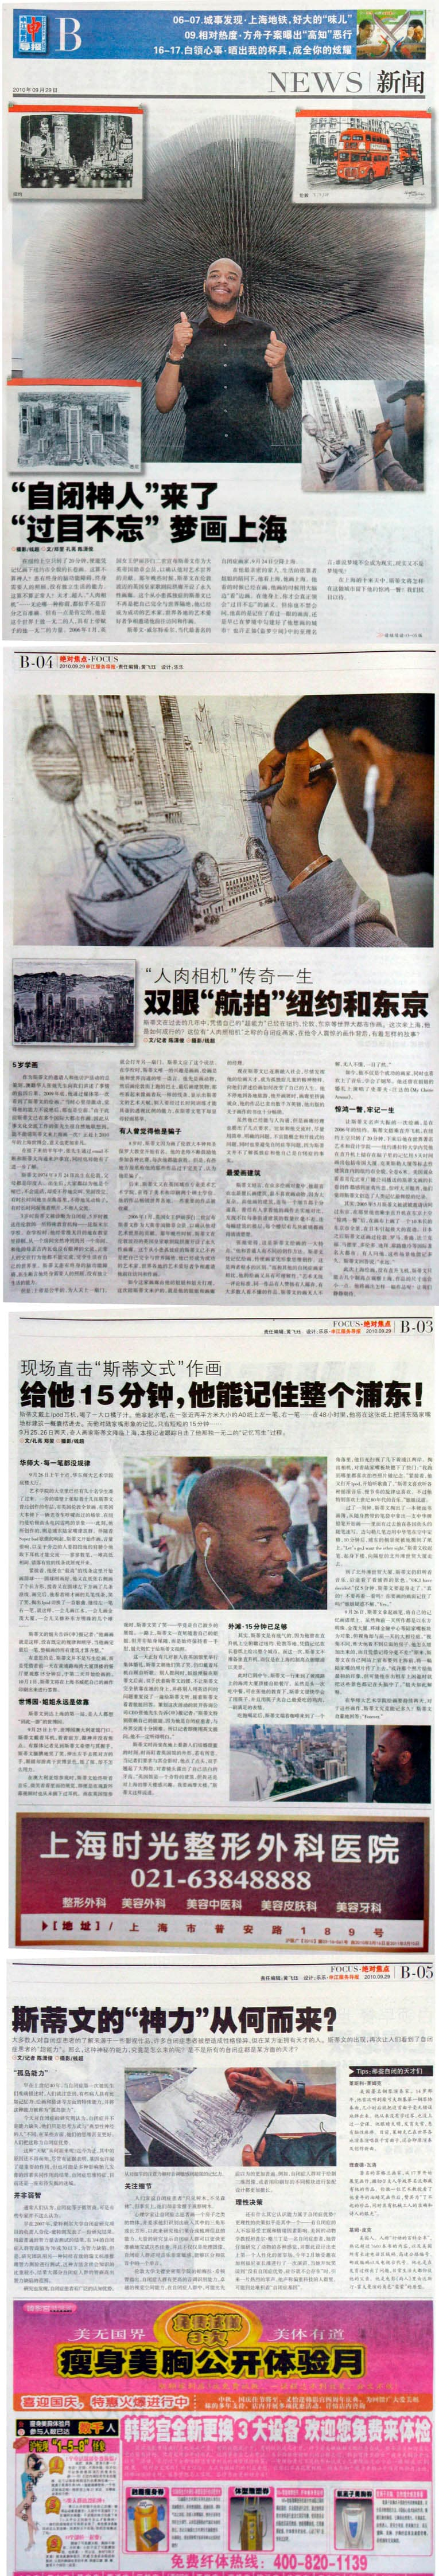 Shanghai Times - The Stephen Wiltshire Archive - Press cuttings